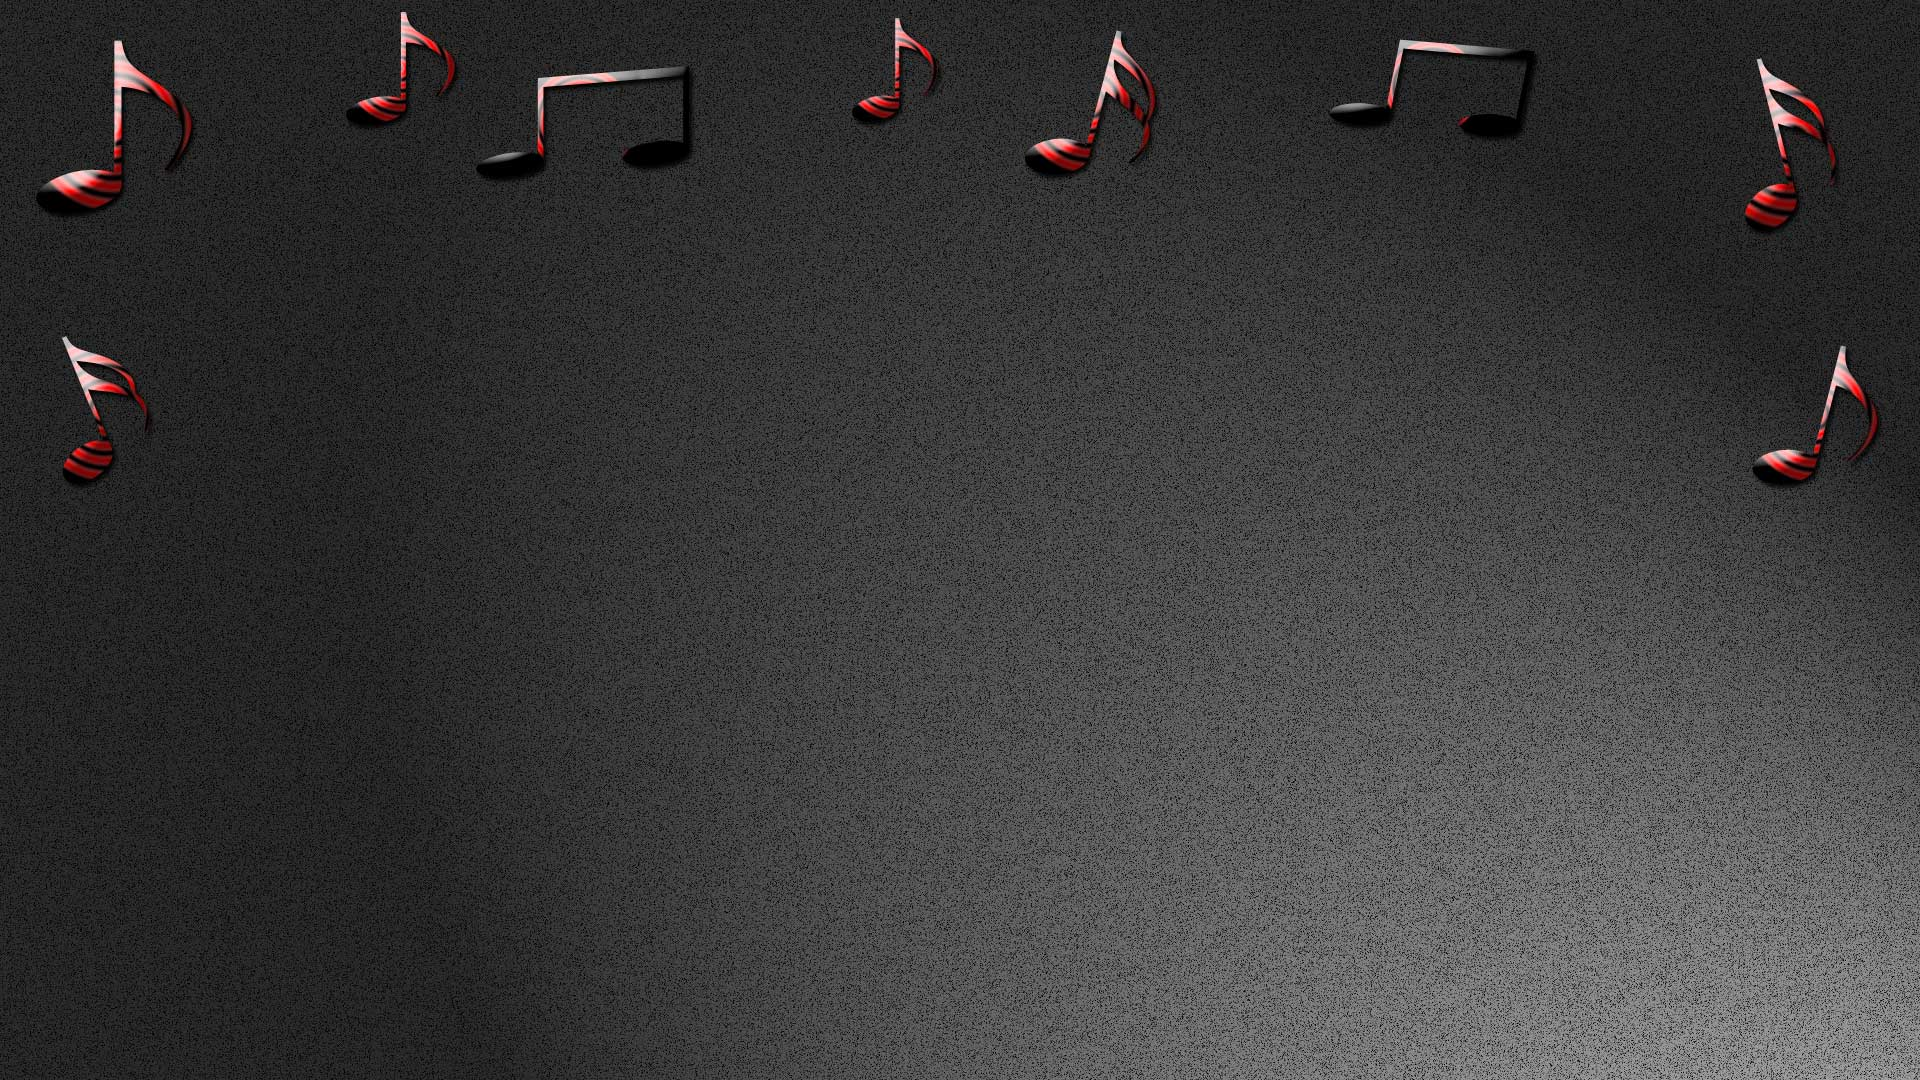 Background With Music Notes EZTechTrainingcom 1920x1080